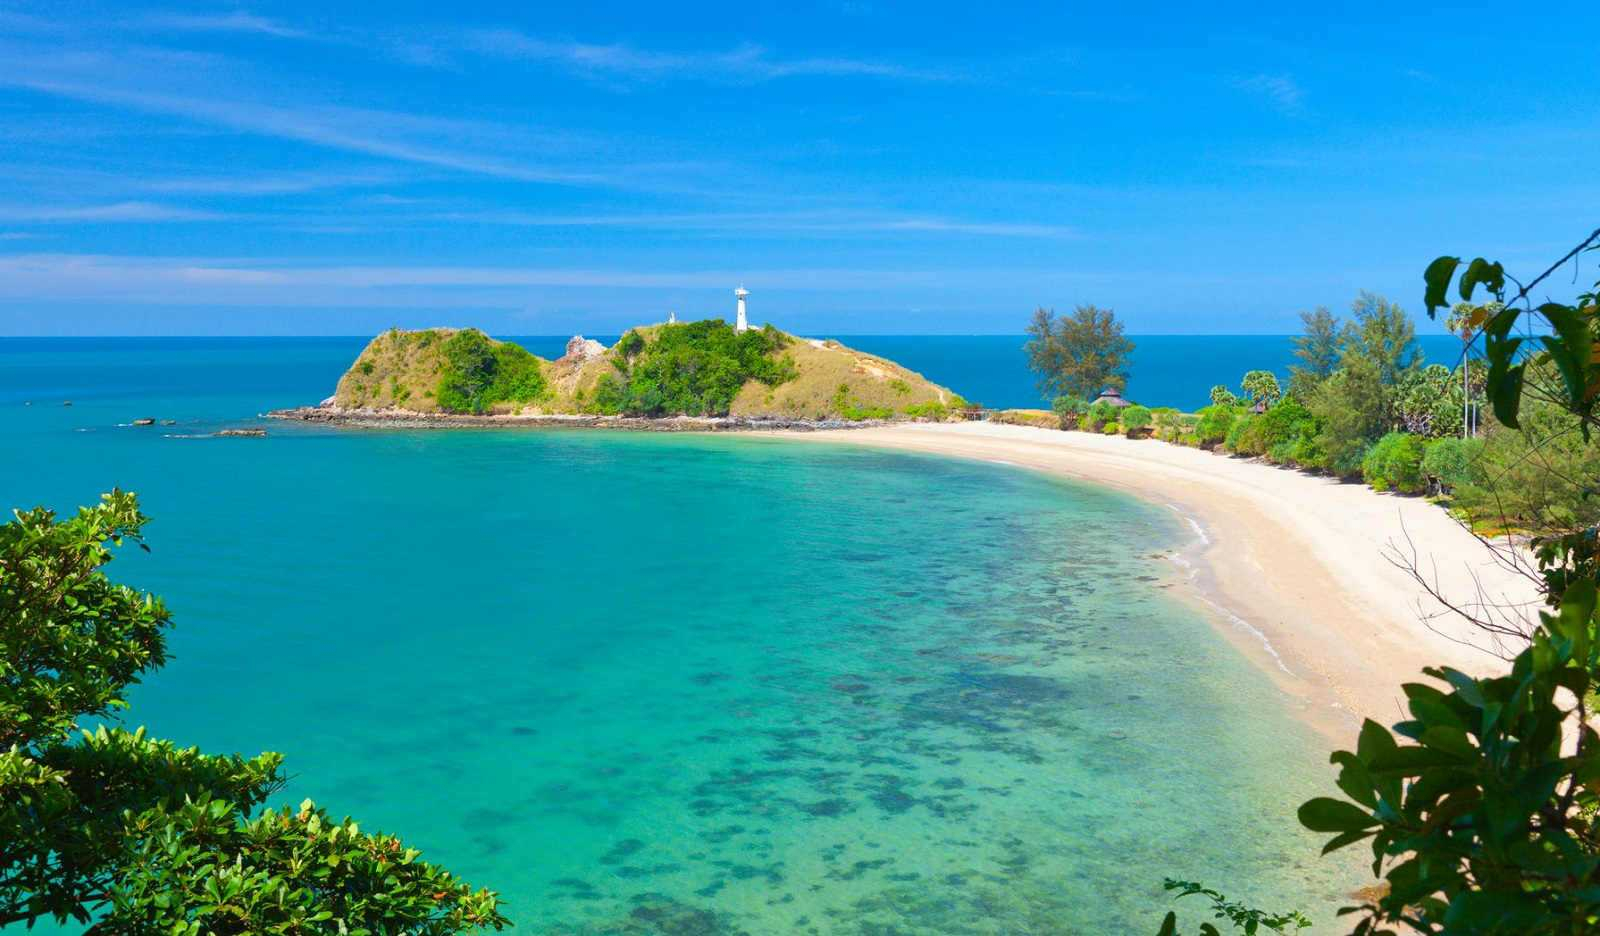 5 Gorgeous Indian Ocean Islands For Your Next Vacation